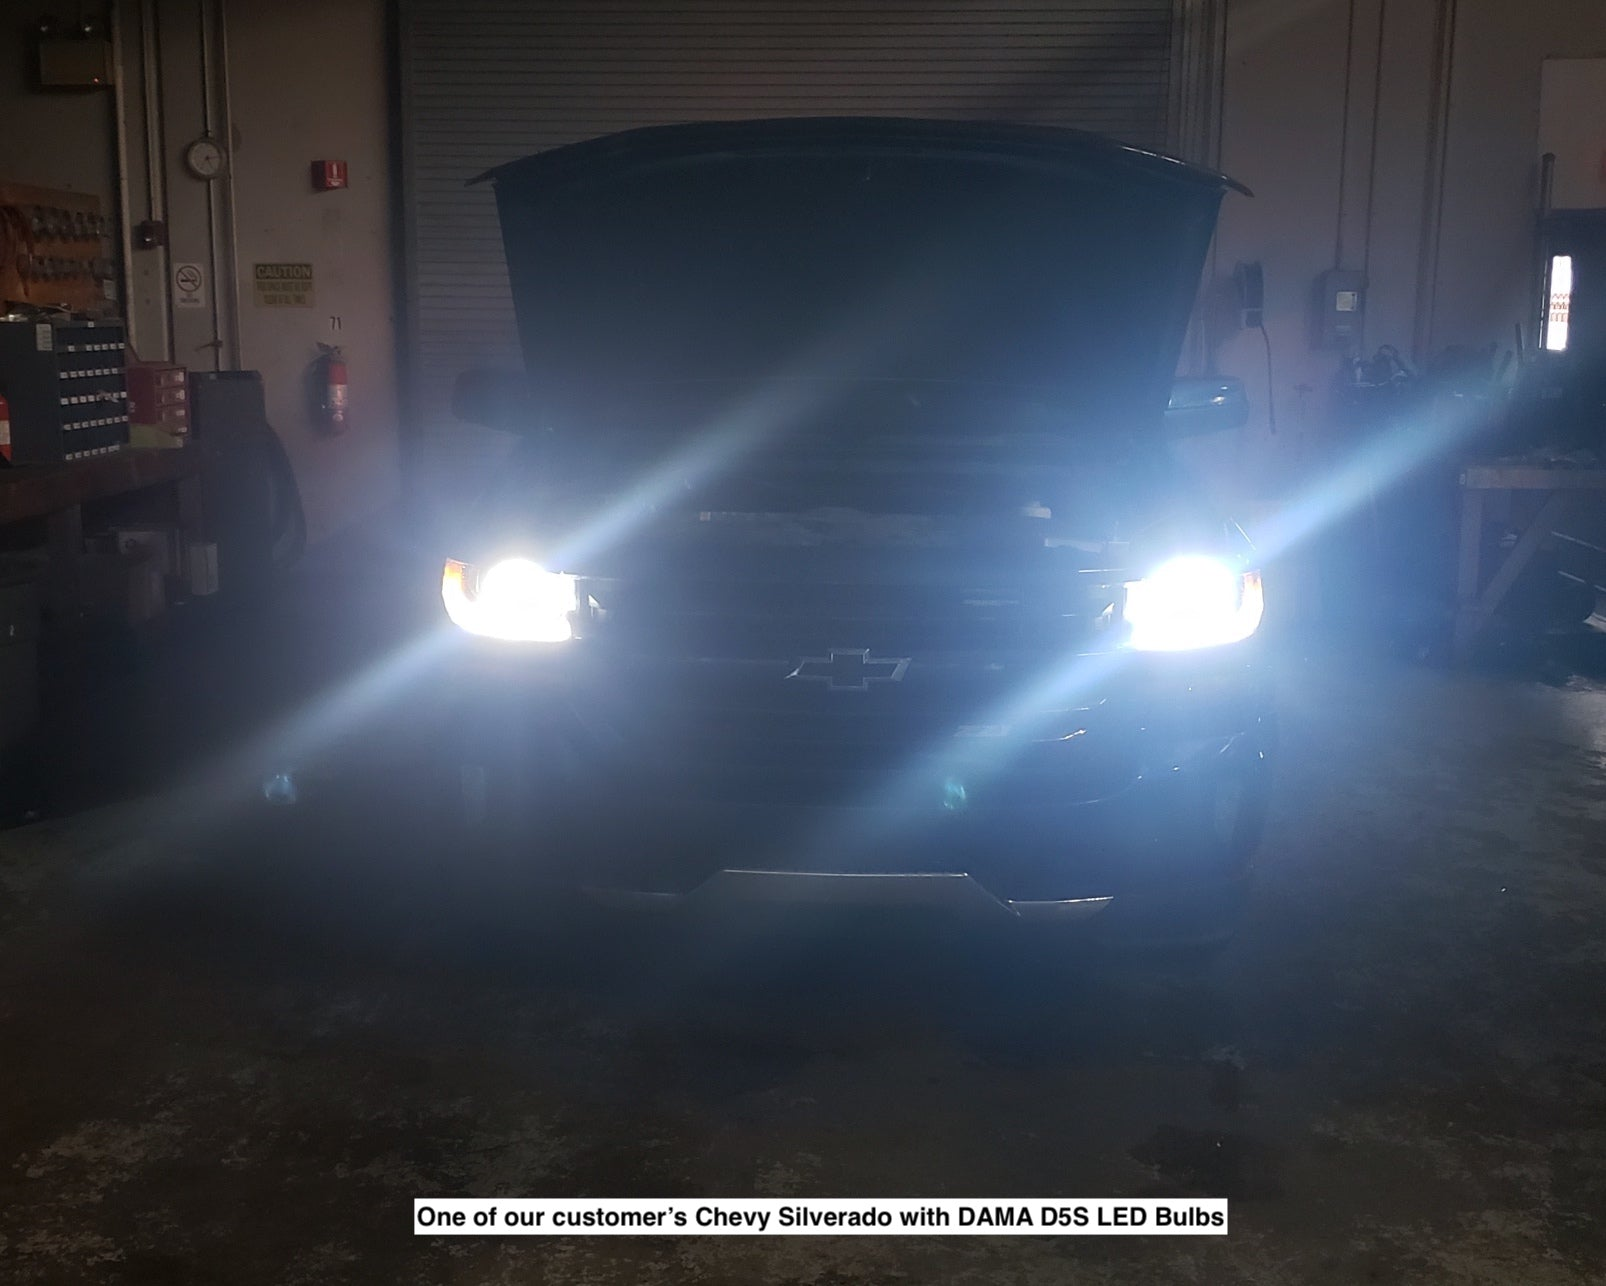 Chevy Silverado with D5S LED DAMA Kanji Ultimate Vision installed